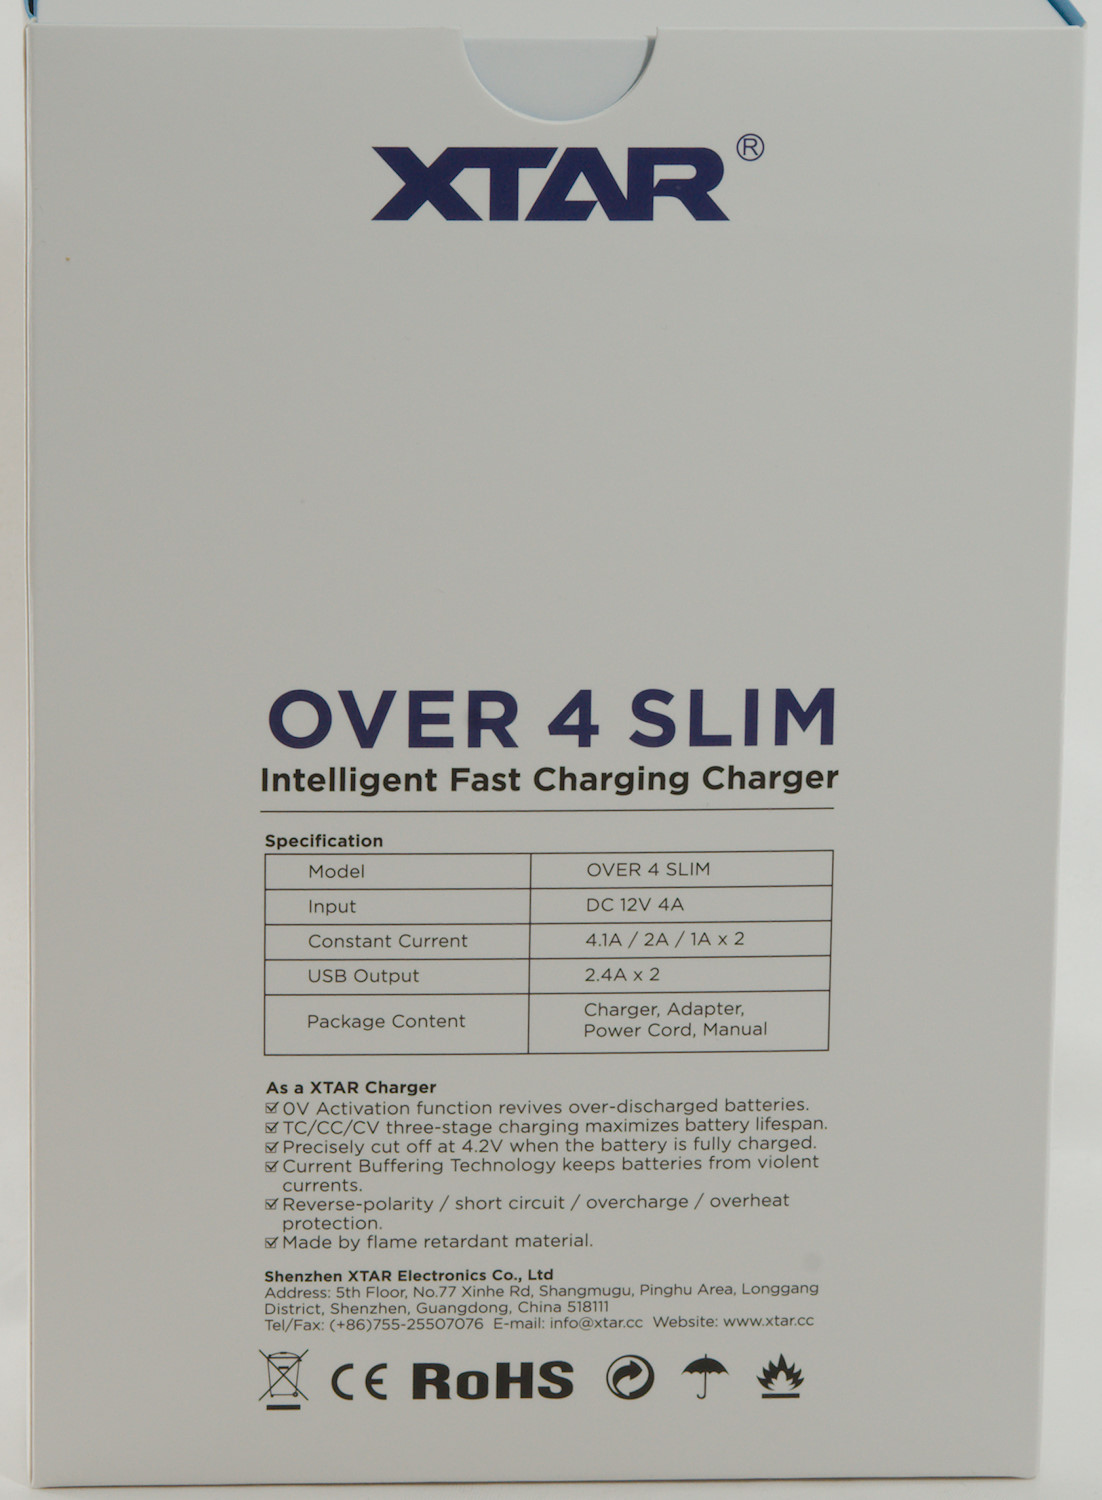 Review Of Charger Xtar Over 4 Slim Fastchargerwithcutoffcircuitpng I Got The In A Cardboard Box With Specifications Printed On It